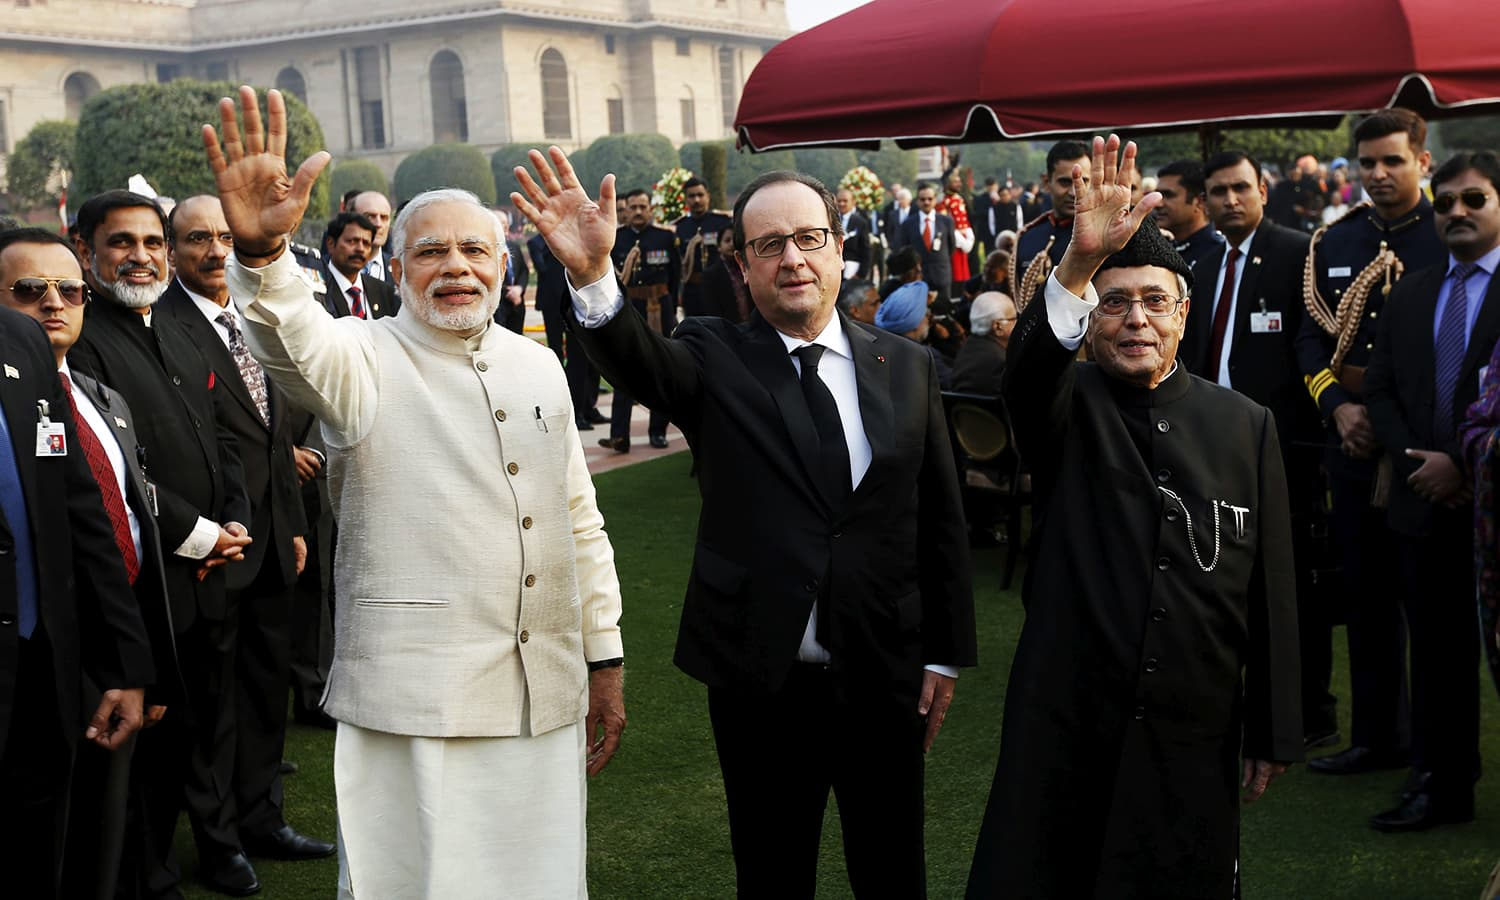 (L-R) India's Prime Minister Narendra Modi, French President Francois Hollande and his Indian counterpart Pranab Mukherjee wave as they attend the 'At Home' reception at the Rashtrapati Bhavan presidential palace after the Republic Day parade. ─ Reuters